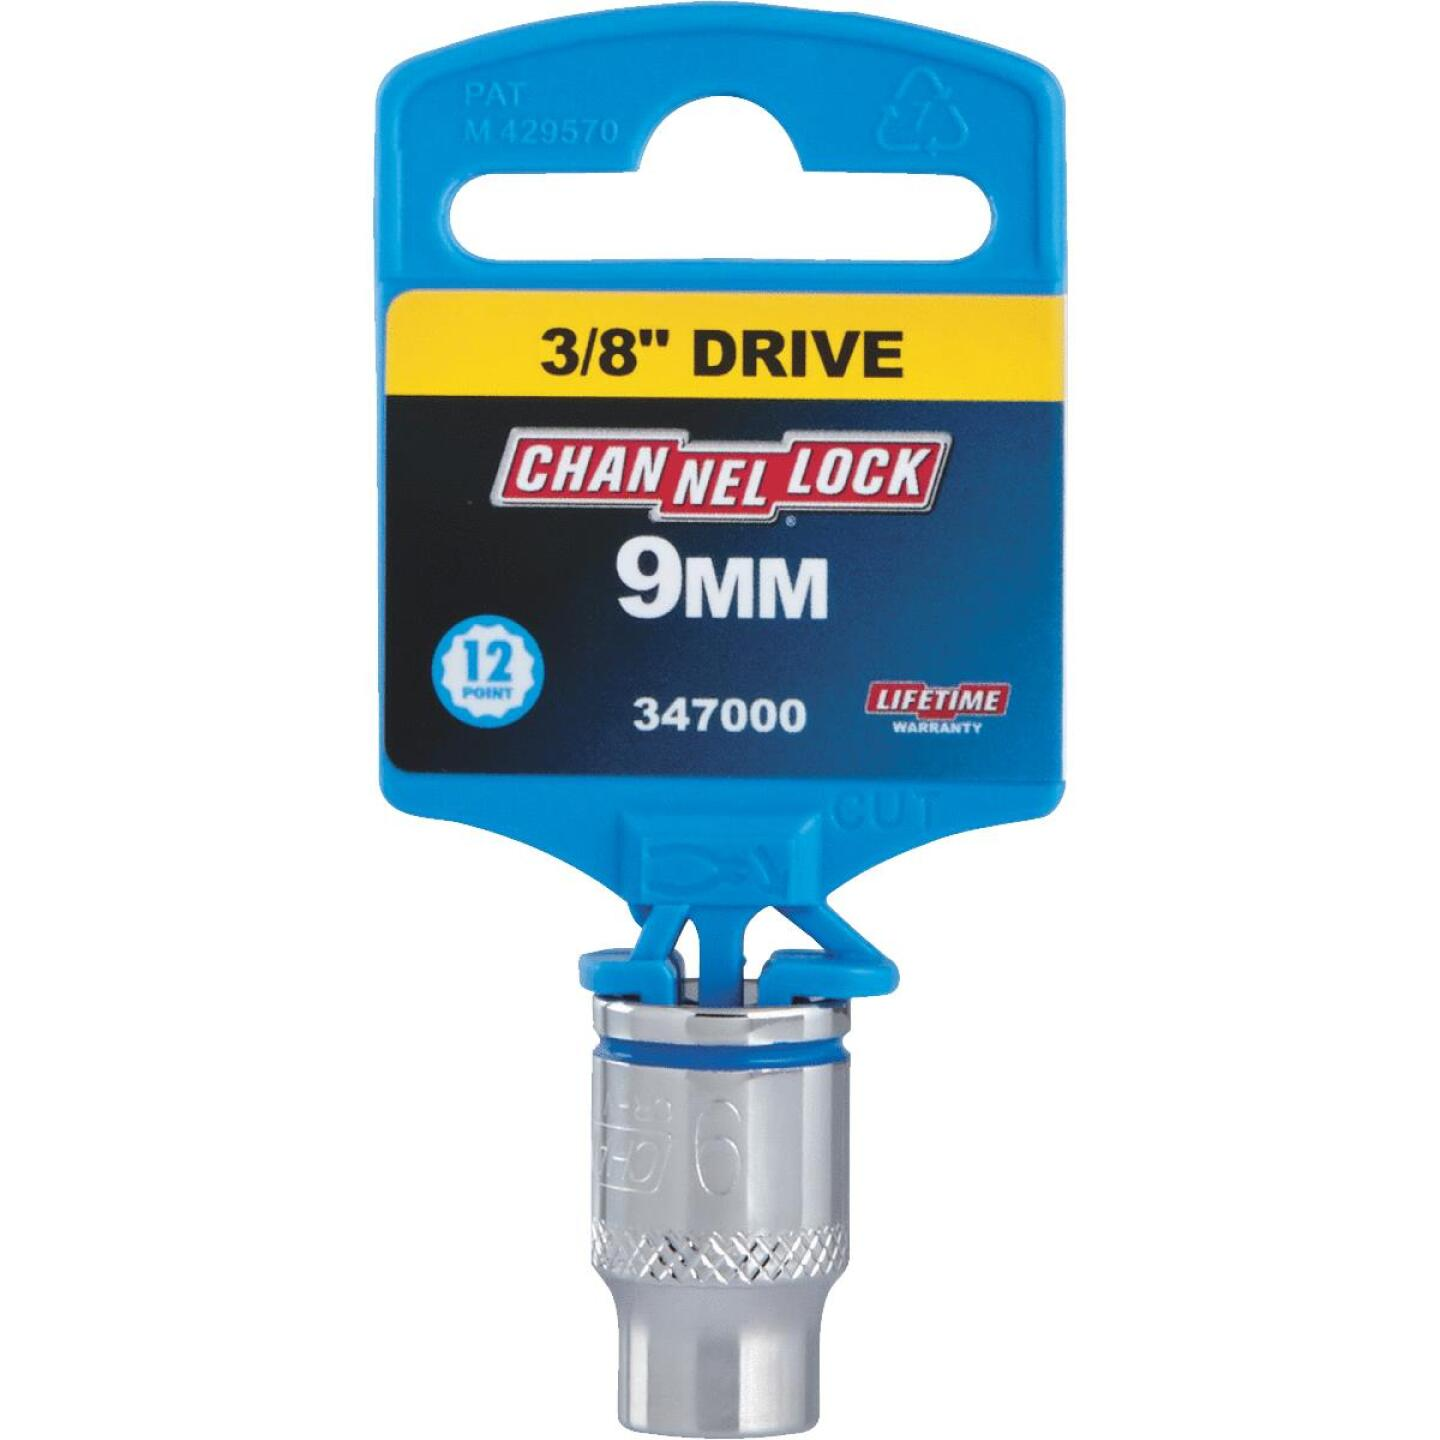 Channellock 3/8 In. Drive 9 mm 12-Point Shallow Metric Socket Image 2